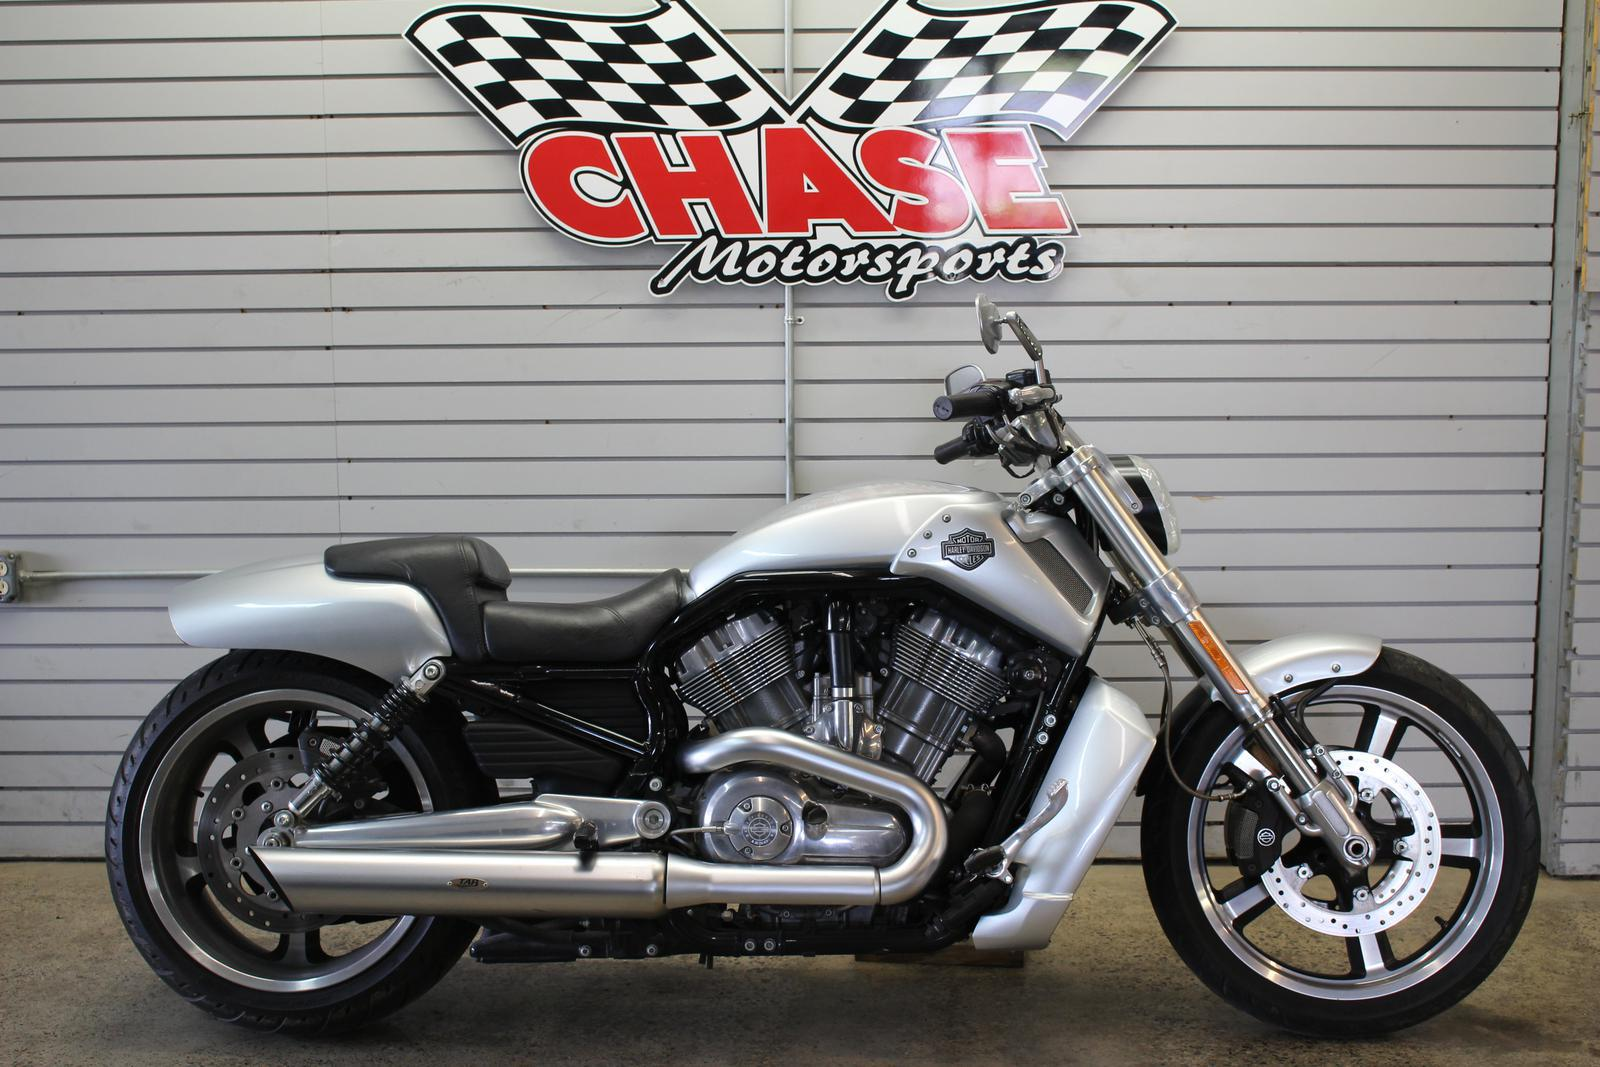 2009 Harley-Davidson® V-ROD MUSCLE VRSCF for sale in Paducah, KY ...